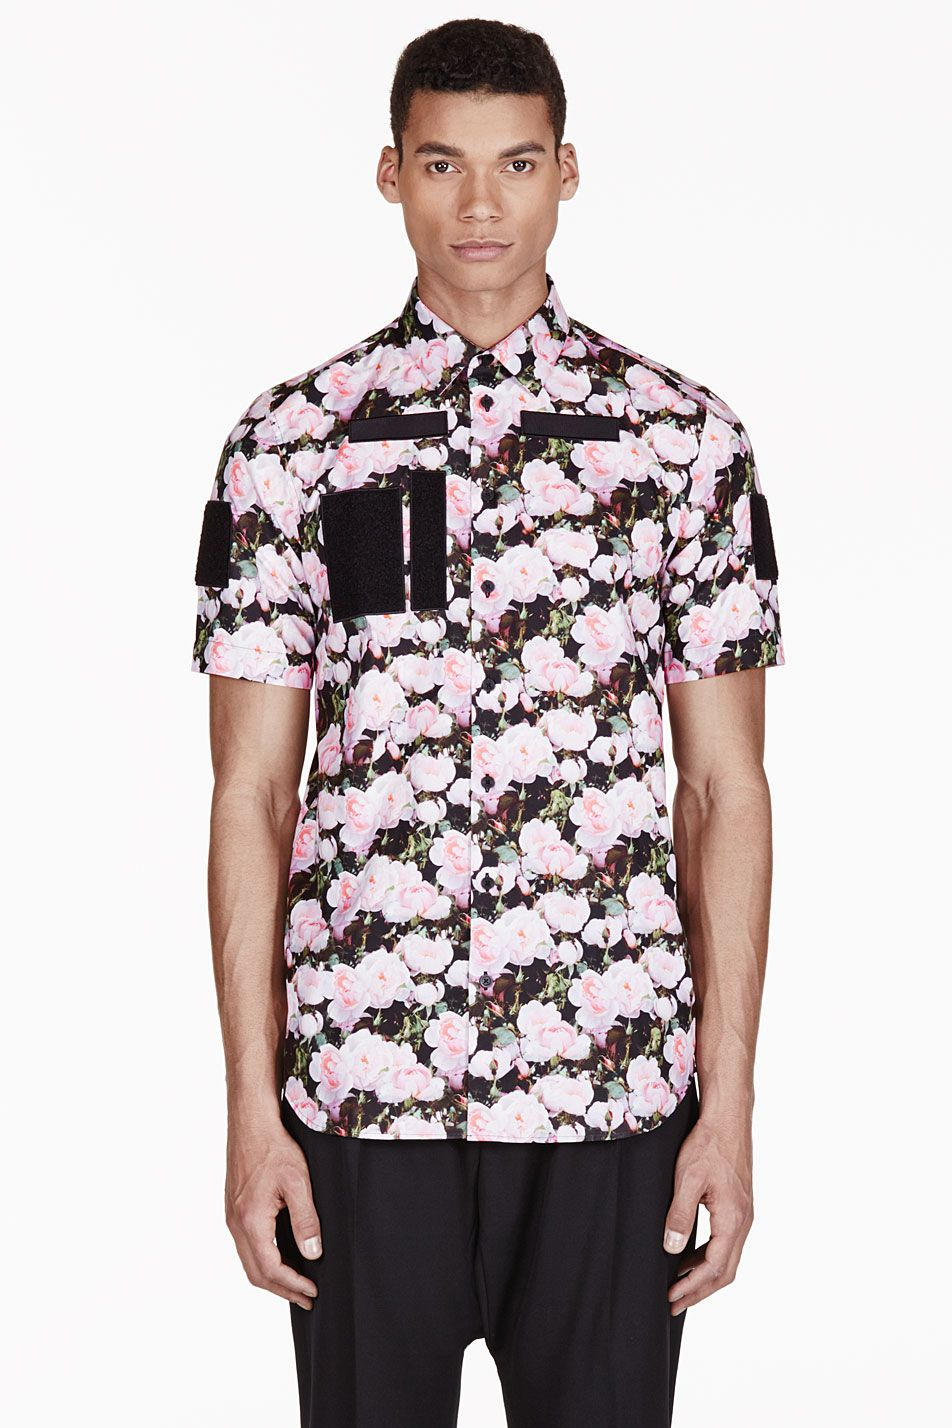 Givenchy for Men SS18 Collection